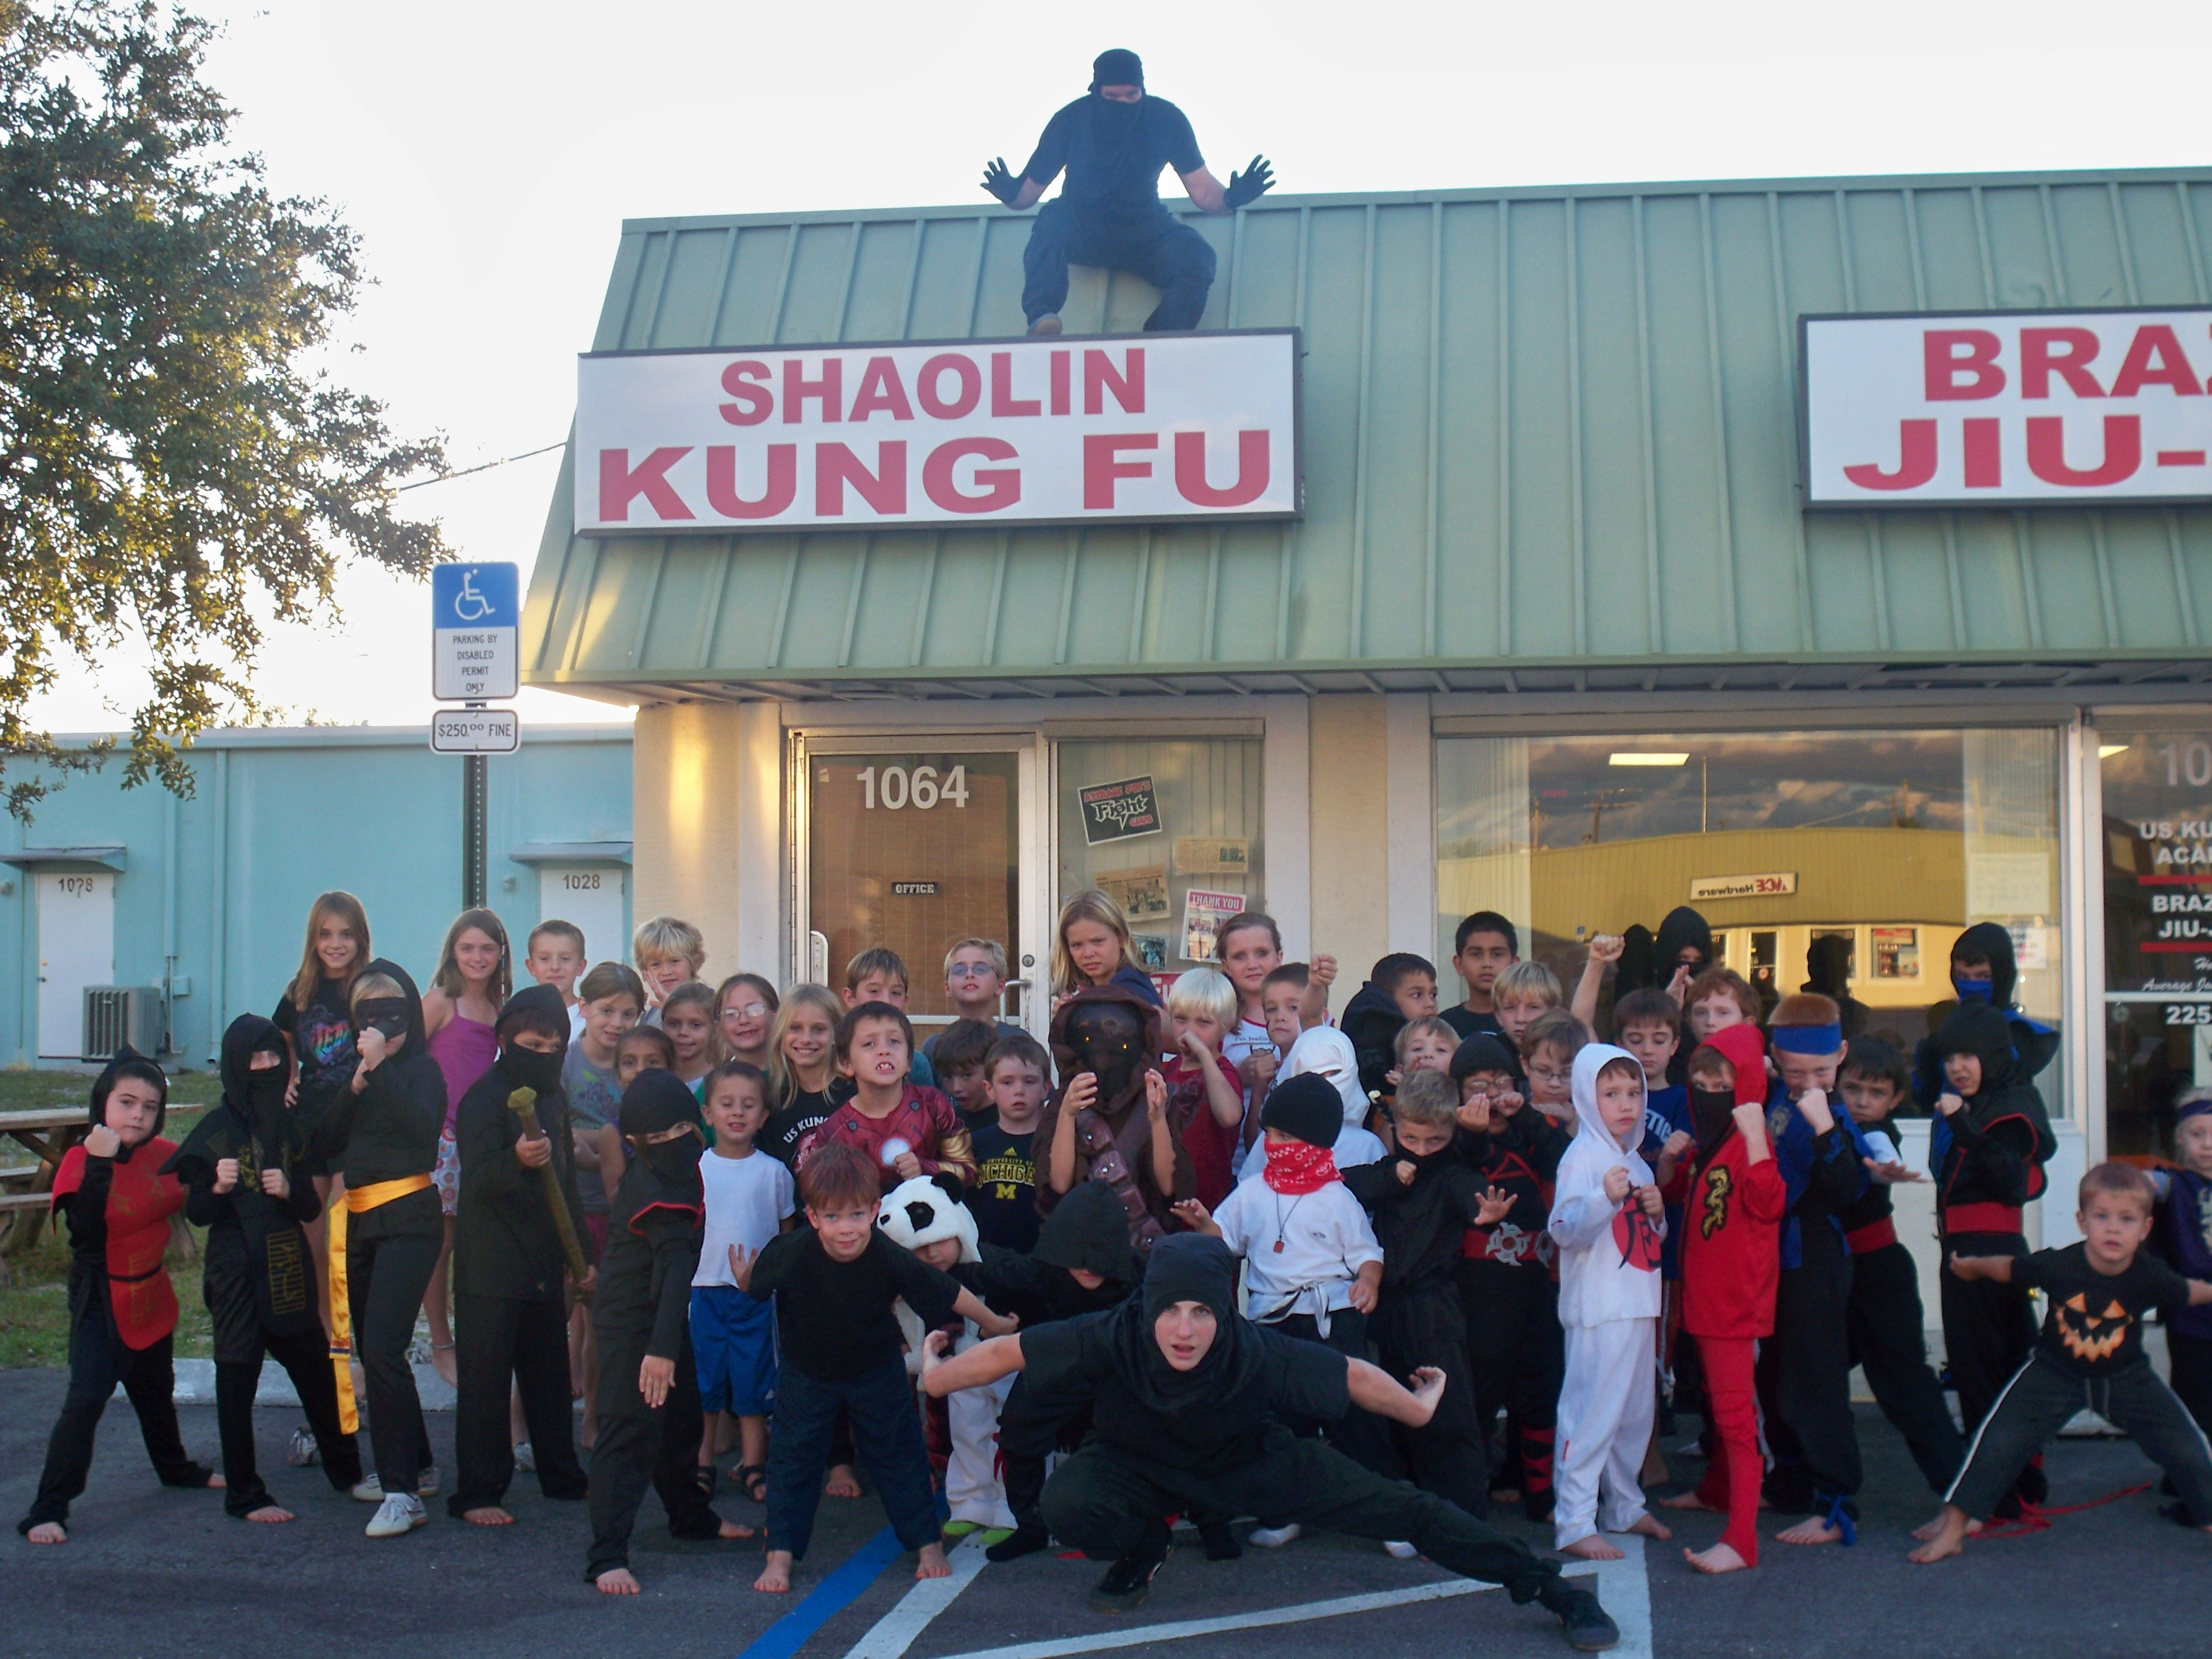 http://www.uskungfuacademy.com/wp-content/uploads/2011/10/100_2088.jpg